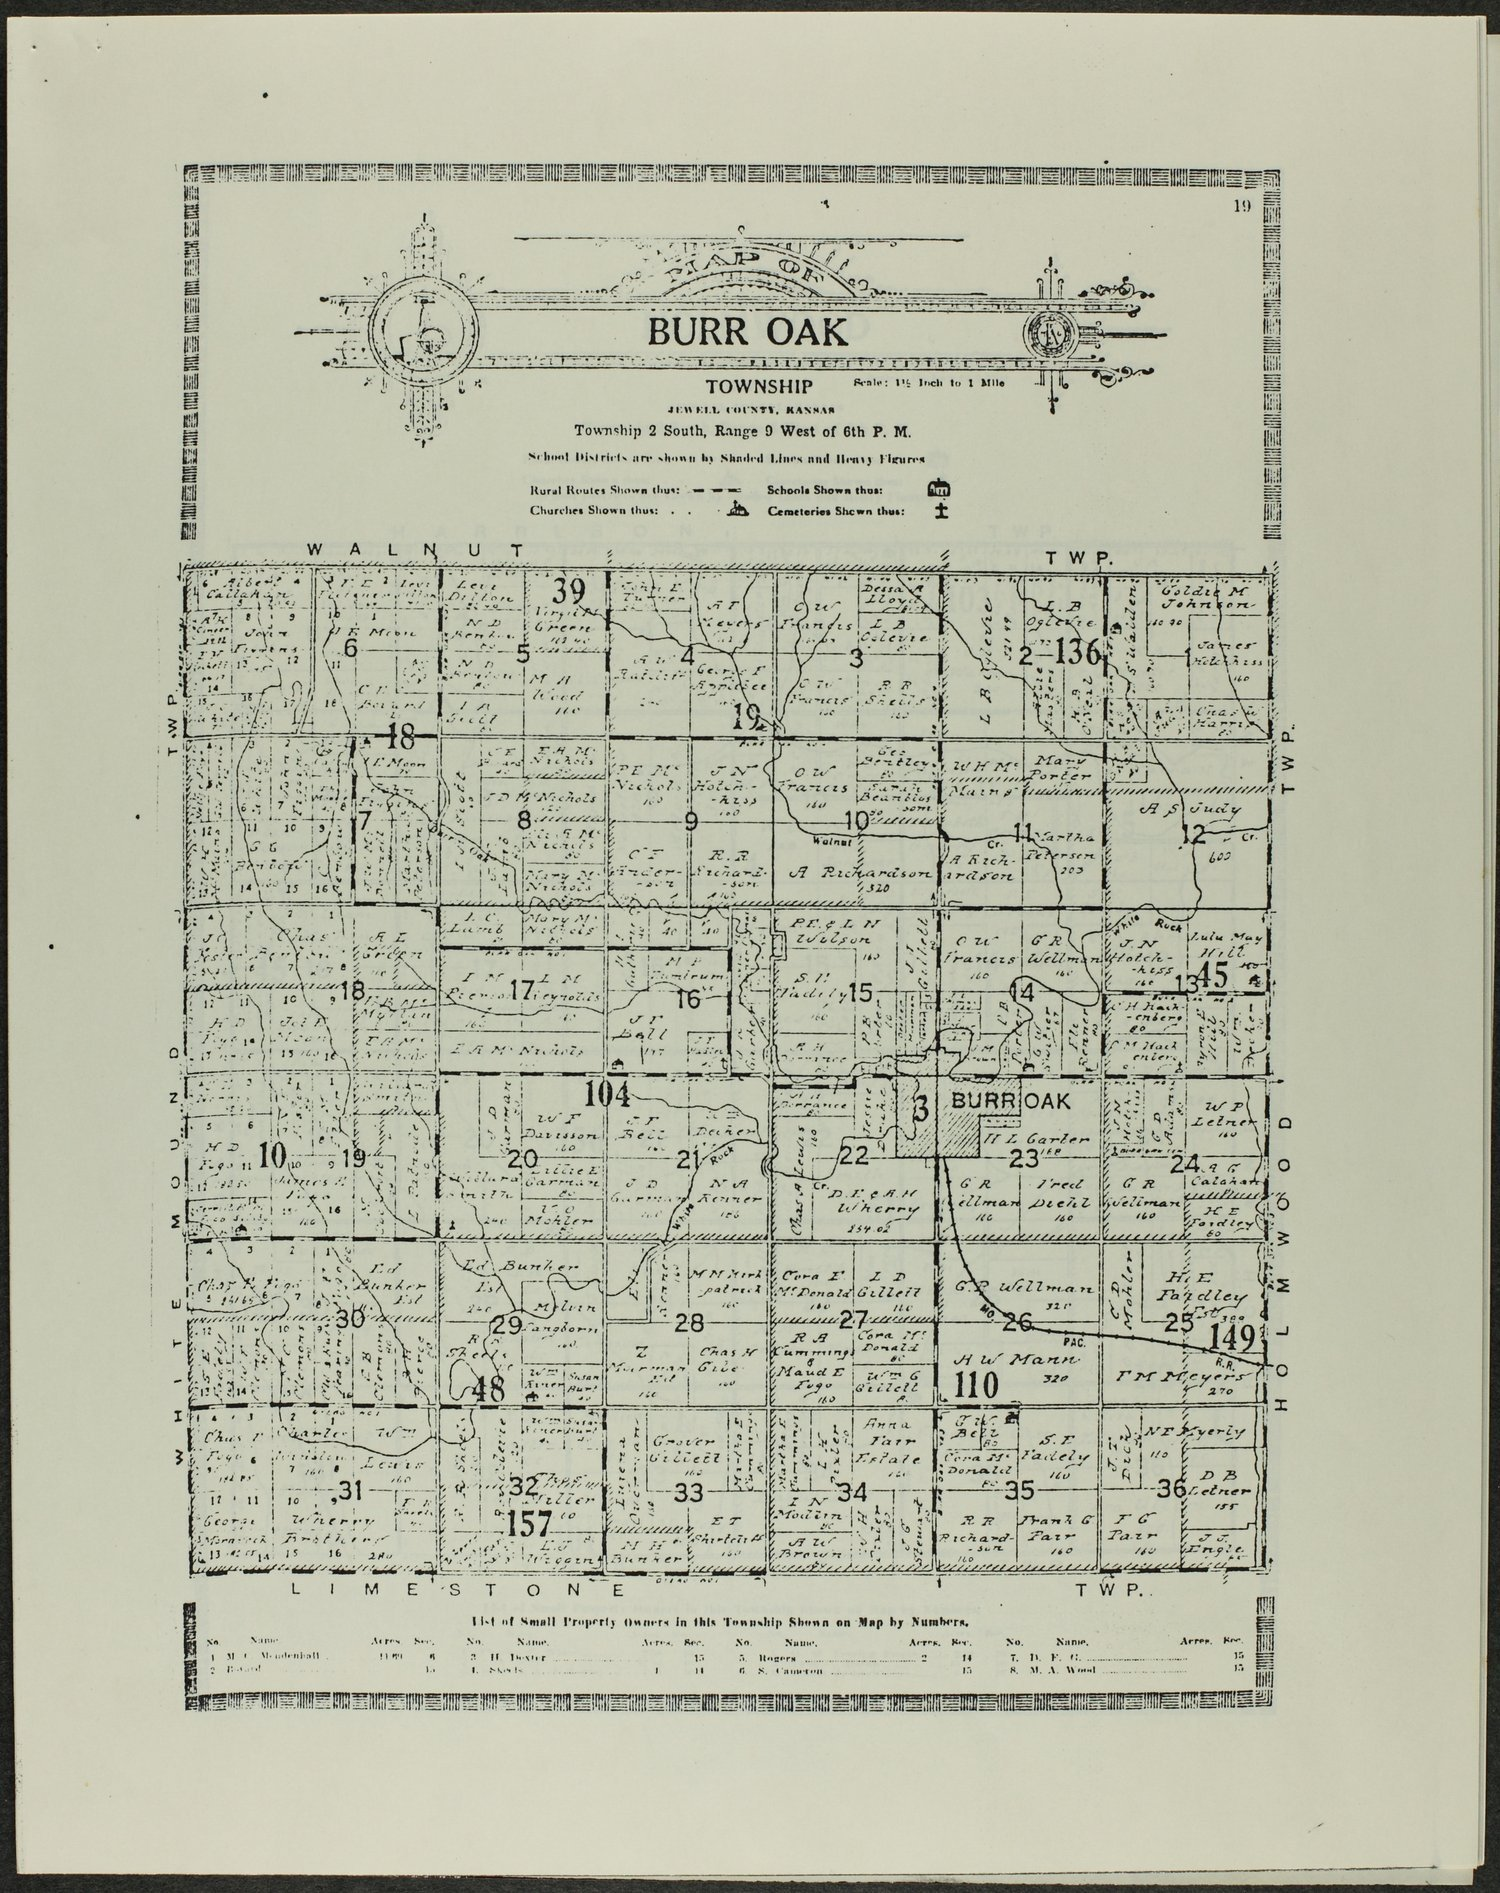 Atlas and plat book of Jewell County, Kansas - 19